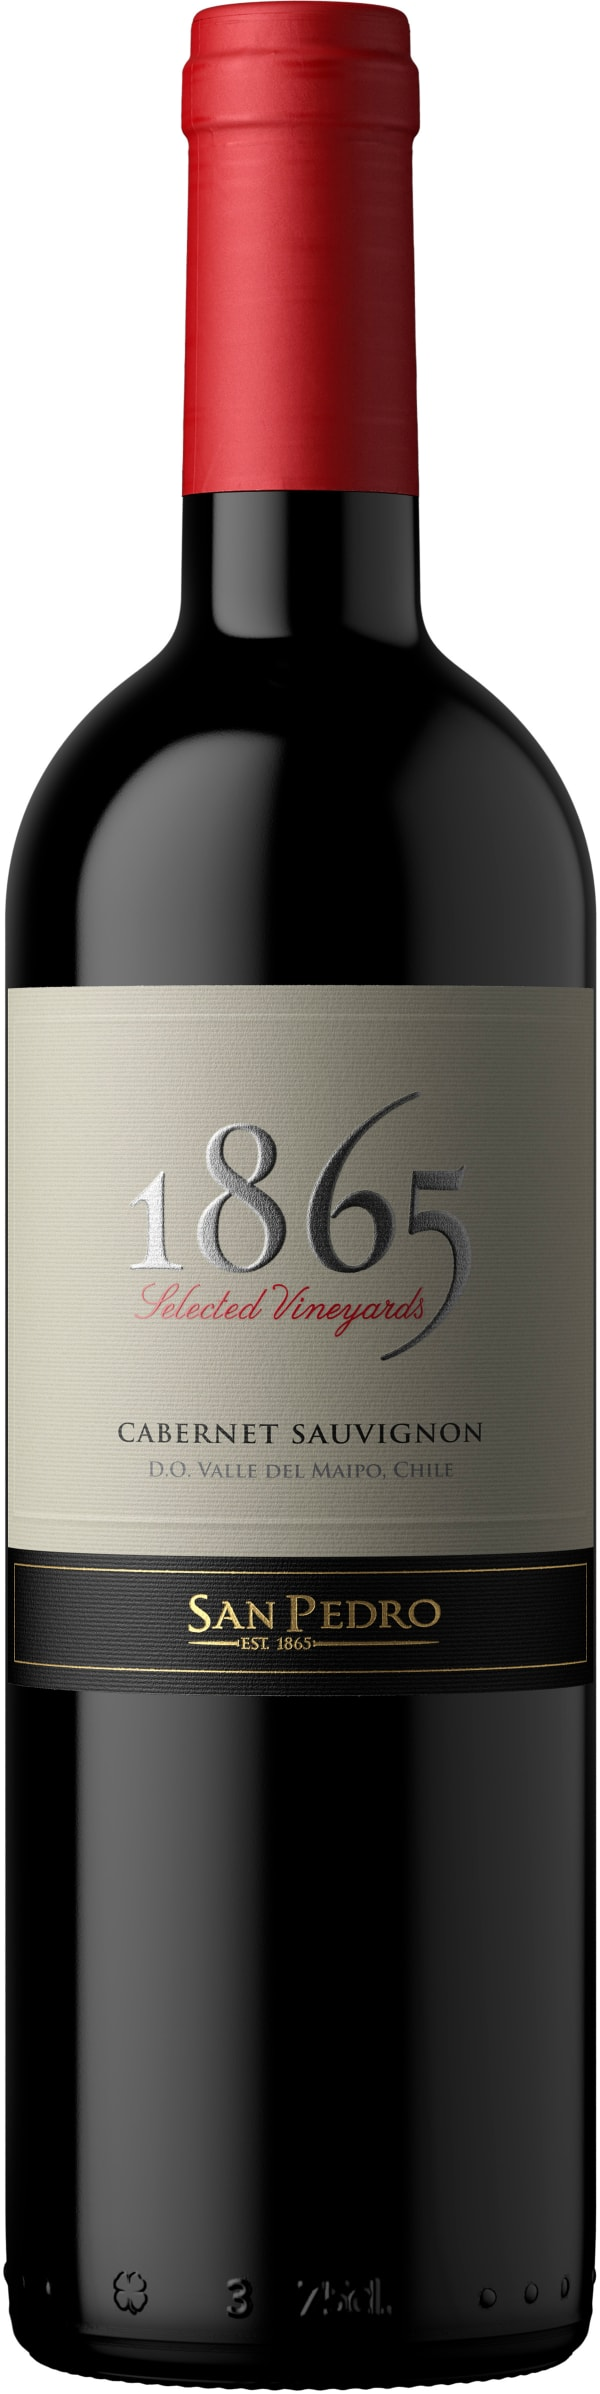 1865 Selected Vineyards Cabernet Sauvignon 2017